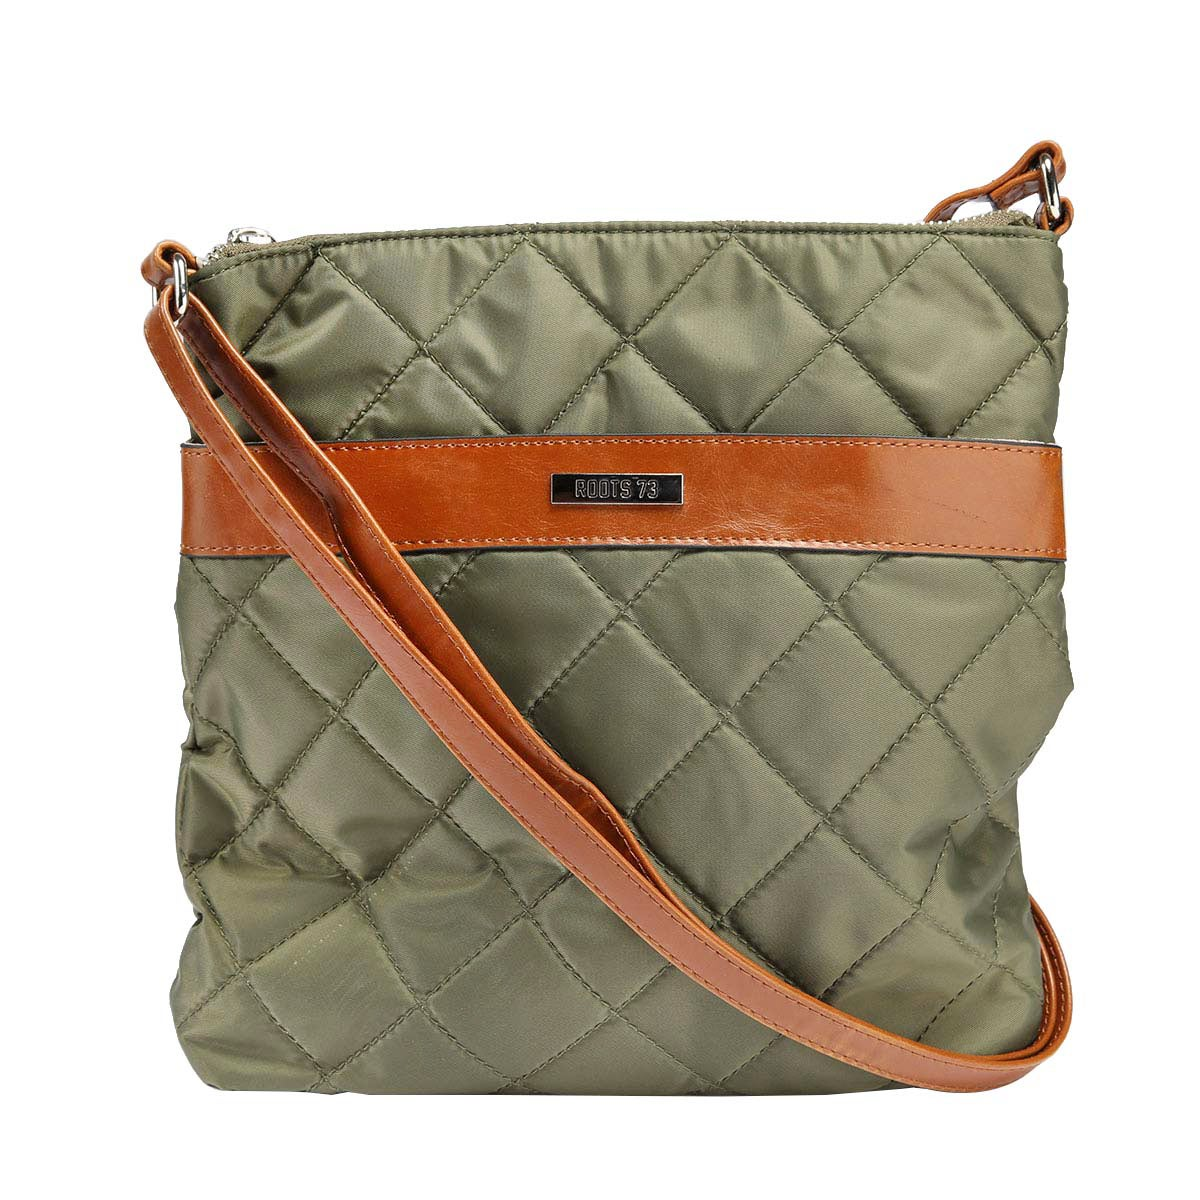 Lds Roots73 kki quilted front crossbody